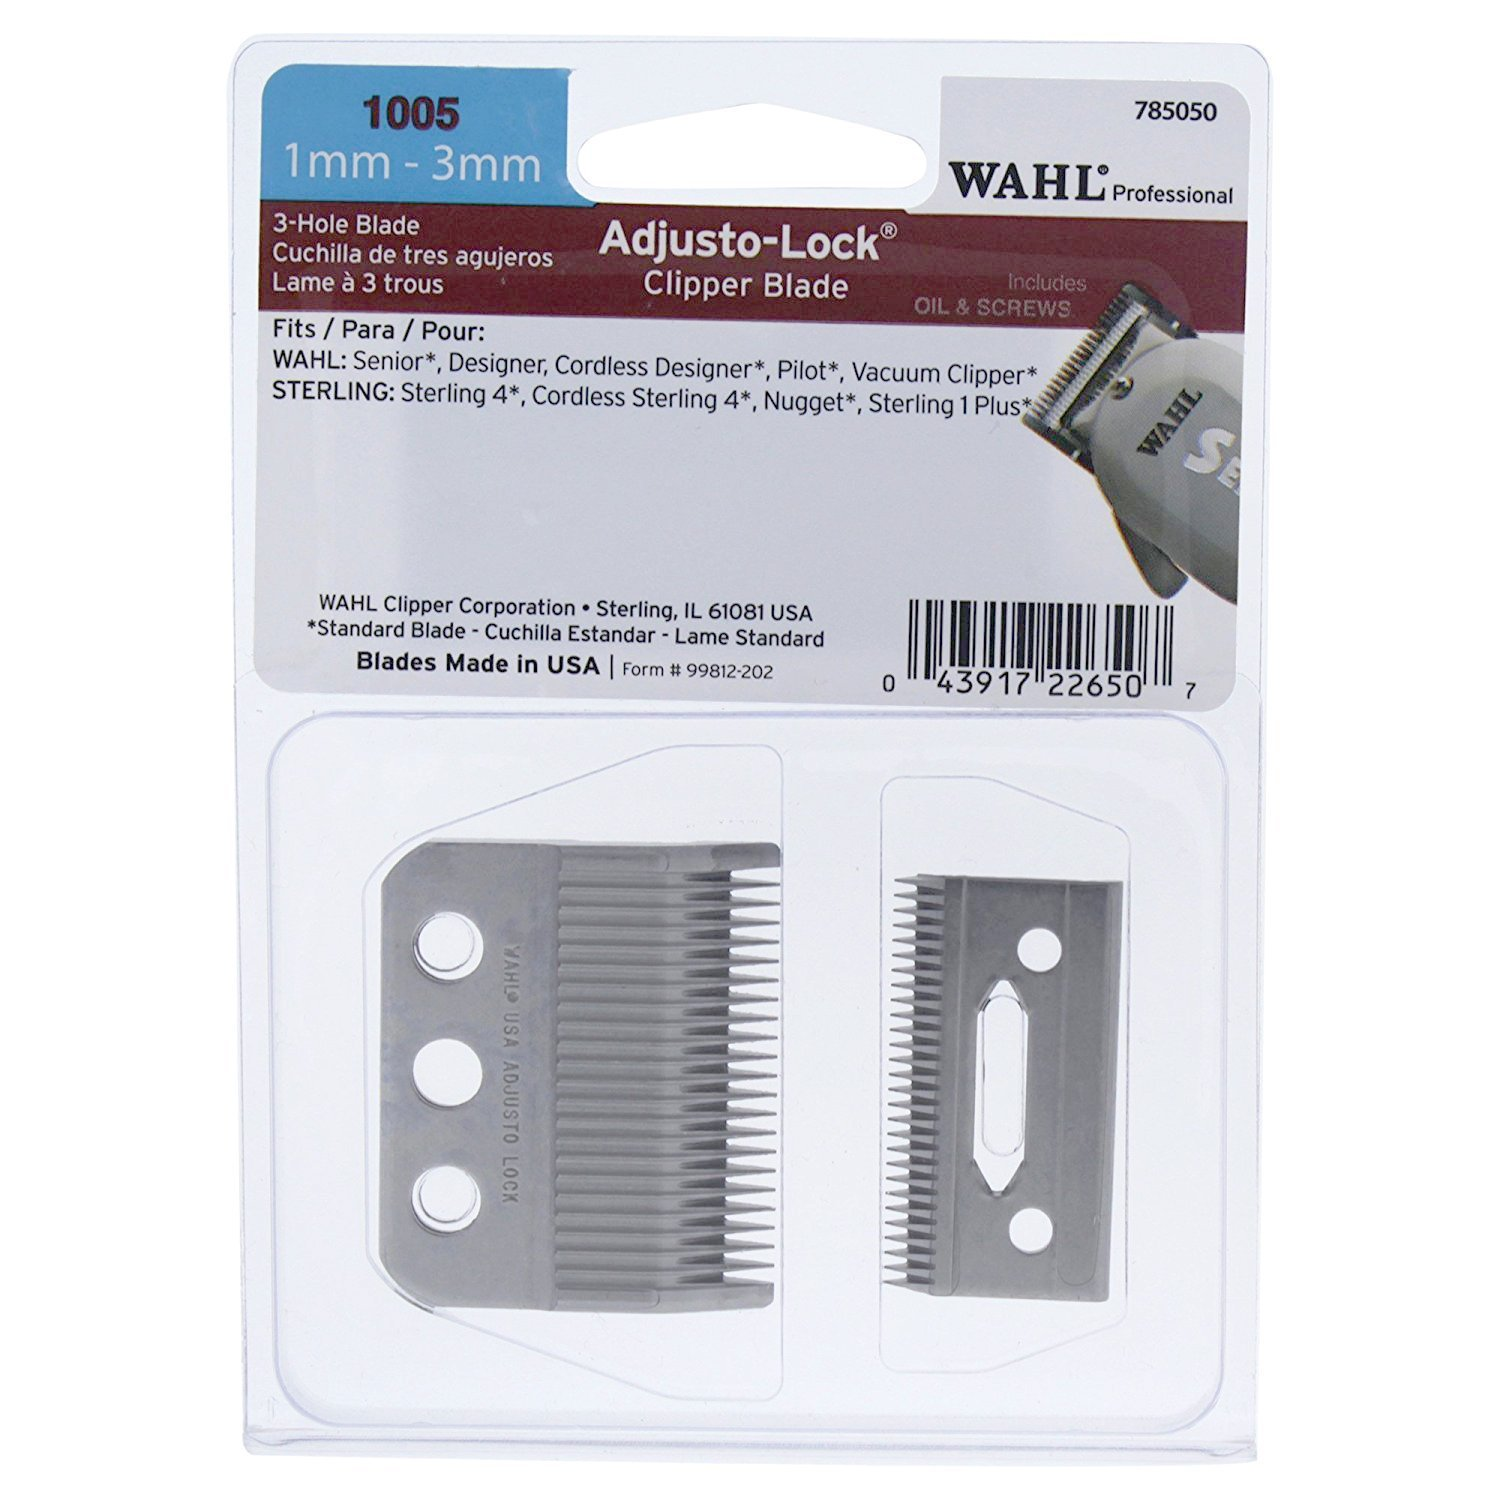 Wahl Professional Adjusto-Lock (1mm – 3mm) Clipper Blade #1005 - Great